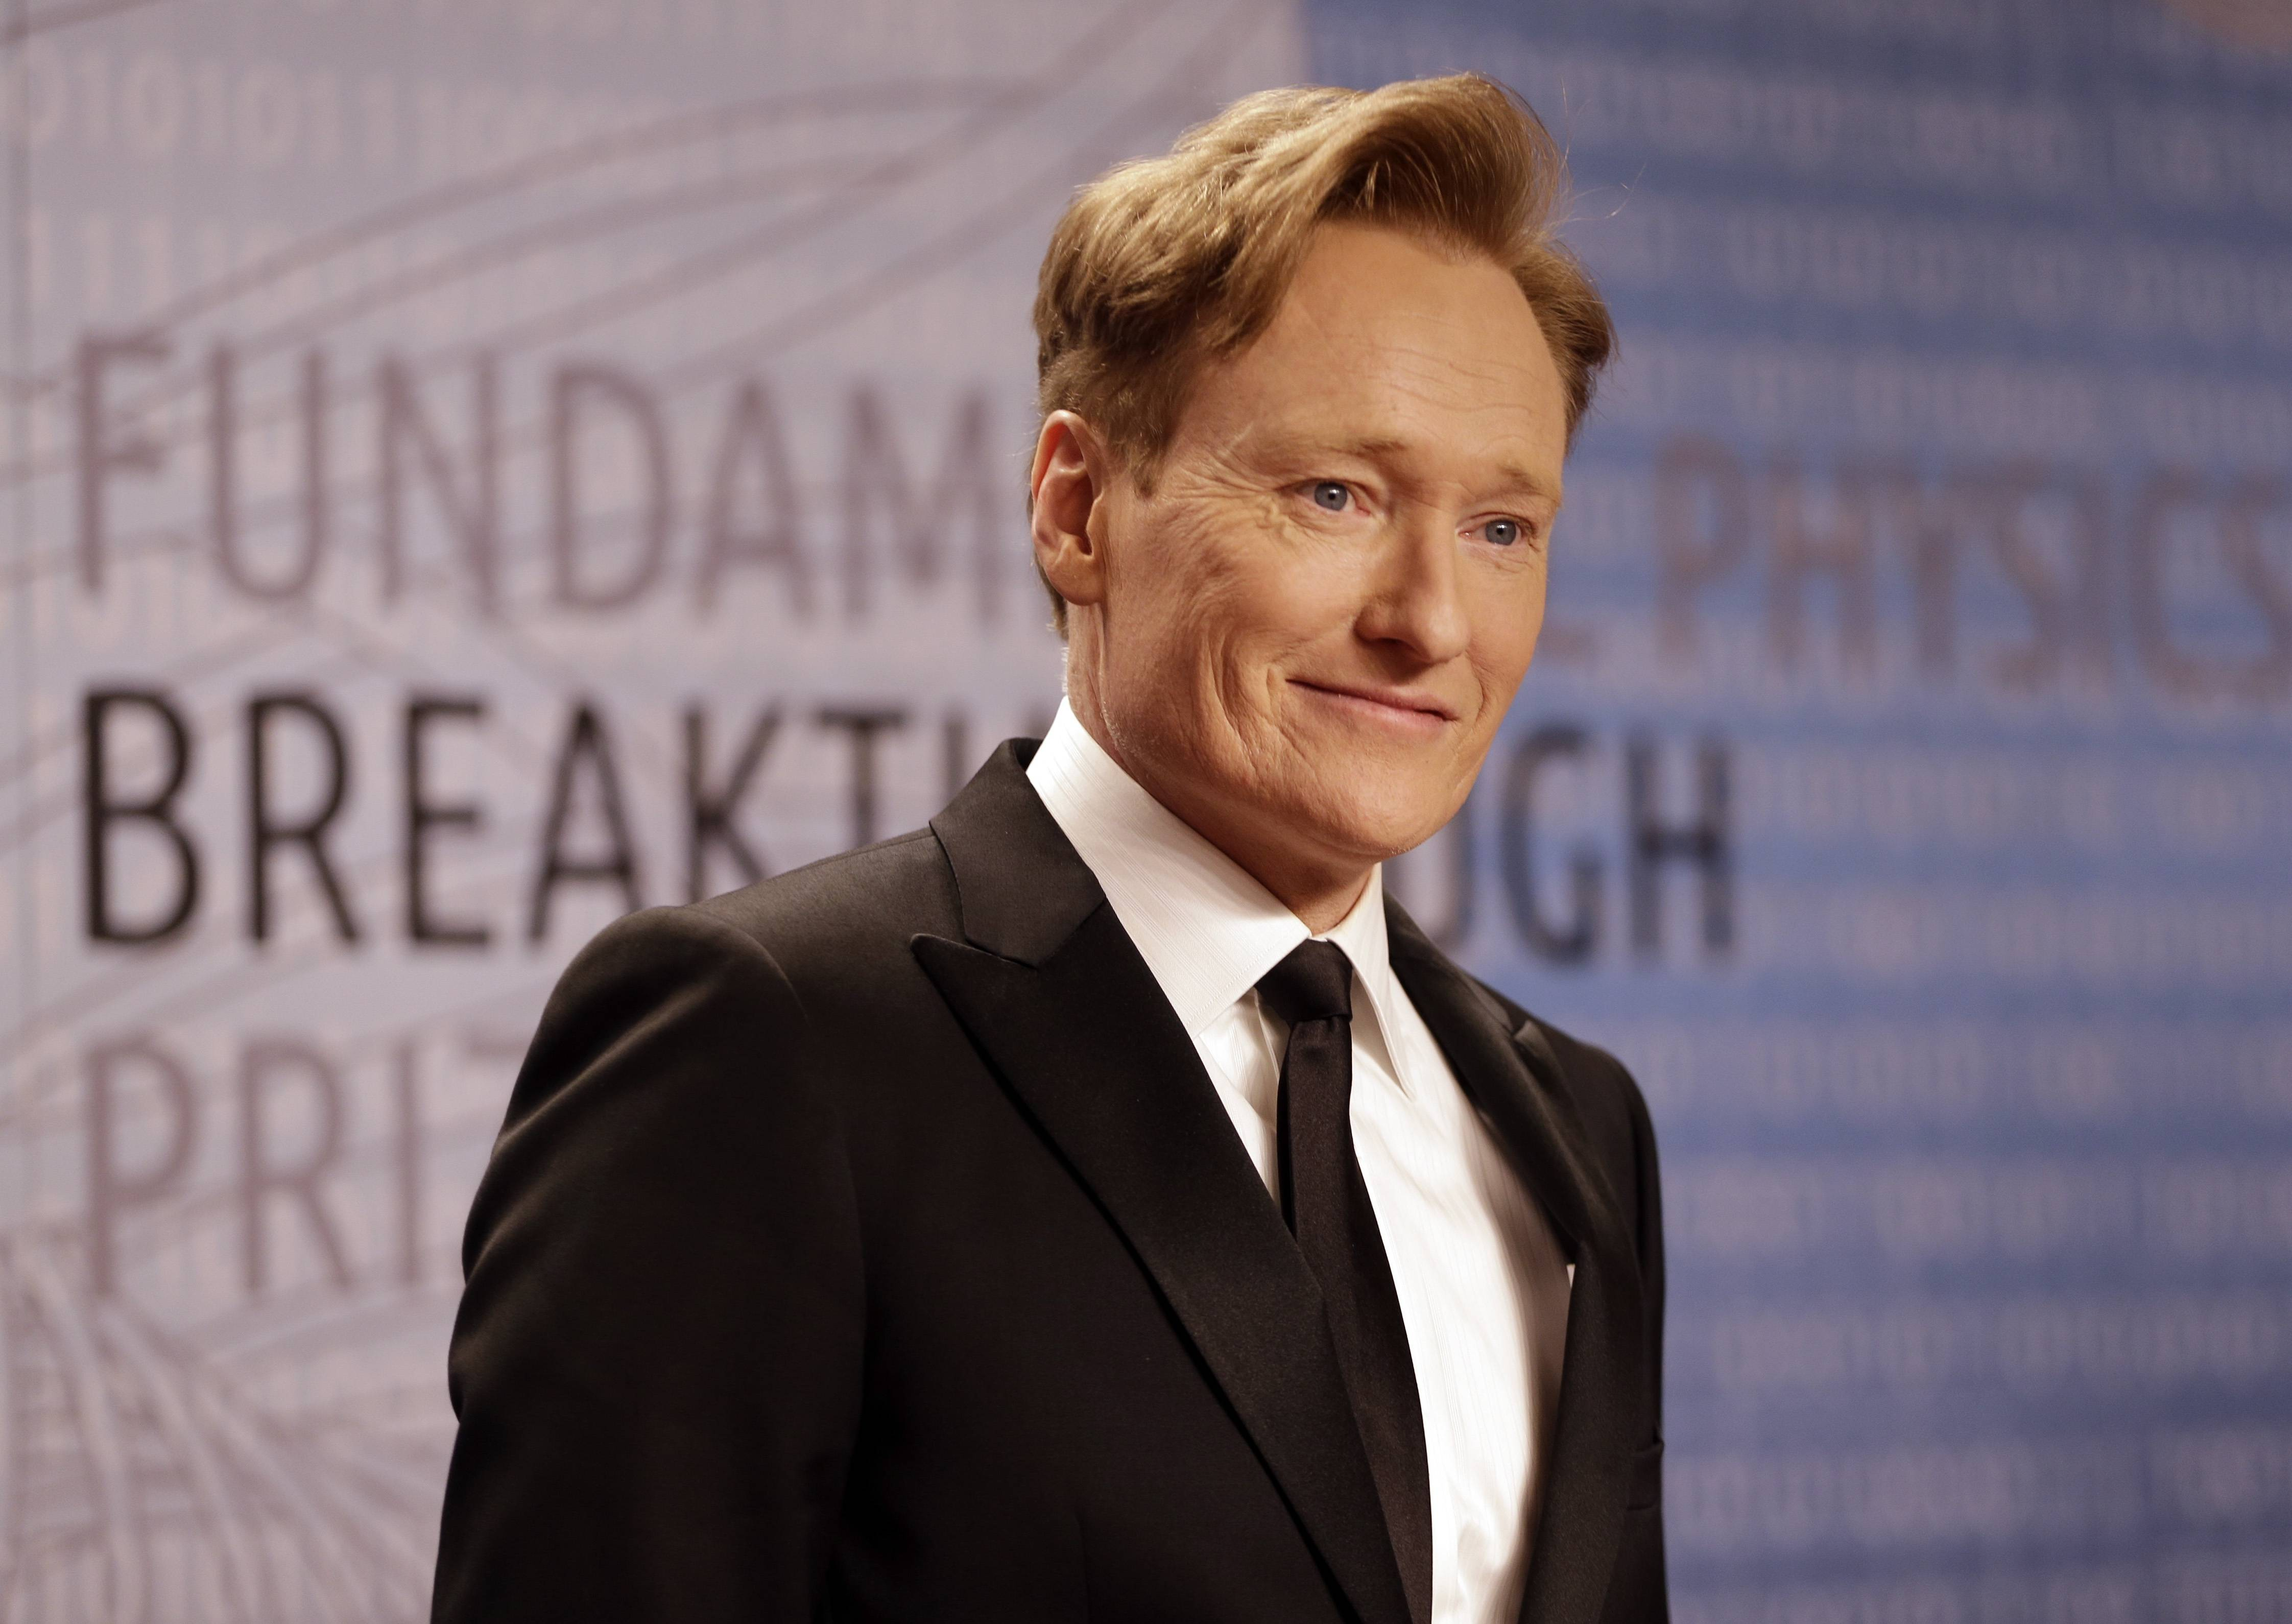 Talk show host Conan O'Brien hosts the 2014 MTV Movie Awards on Sunday at the Nokia Theatre in downtown Los Angeles.